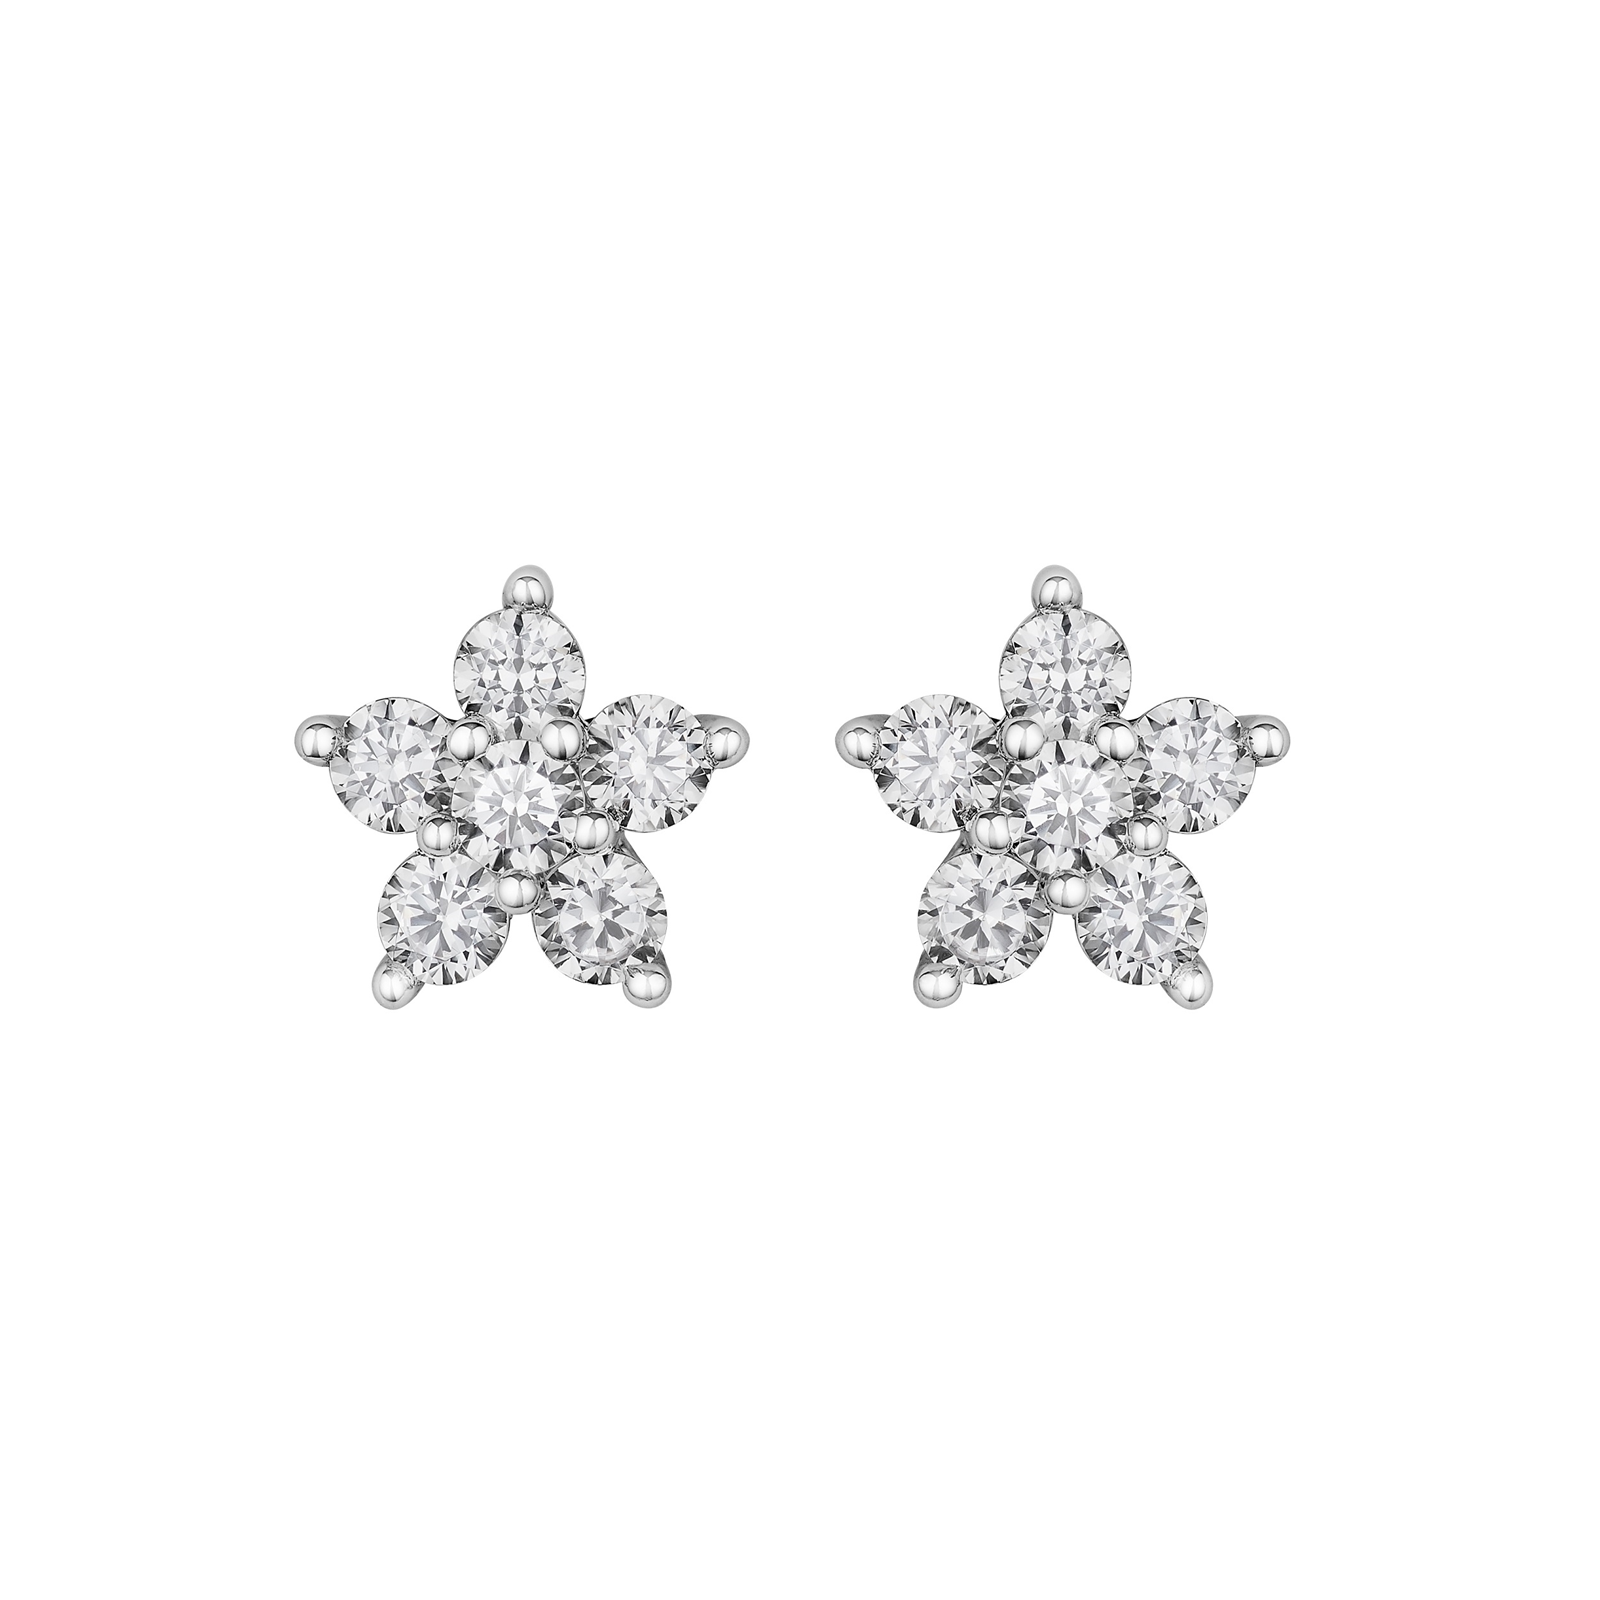 earrings stud jewellery zoom simply sterling earring zirconia cubic silver